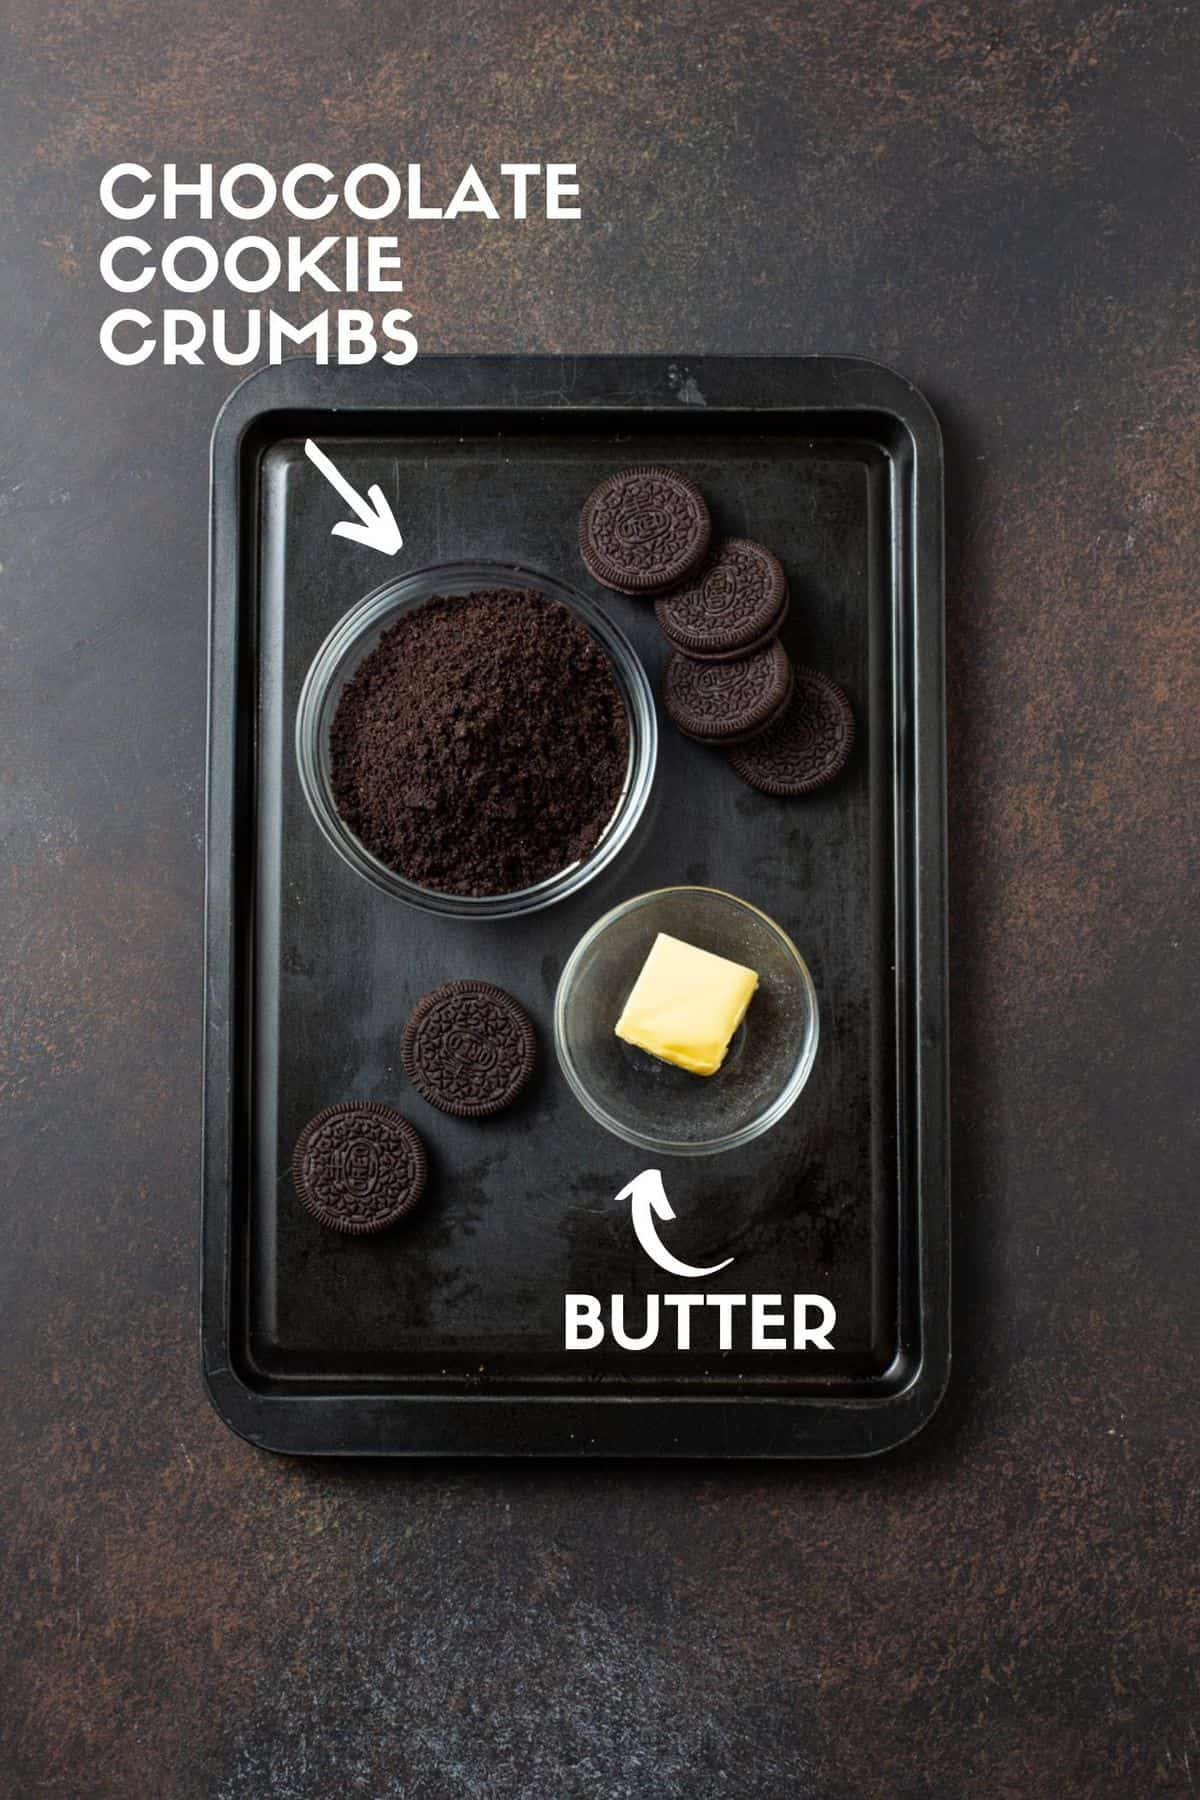 Dark sheet pan with chocolate cookies, bowl of cookie crumbs and butter.